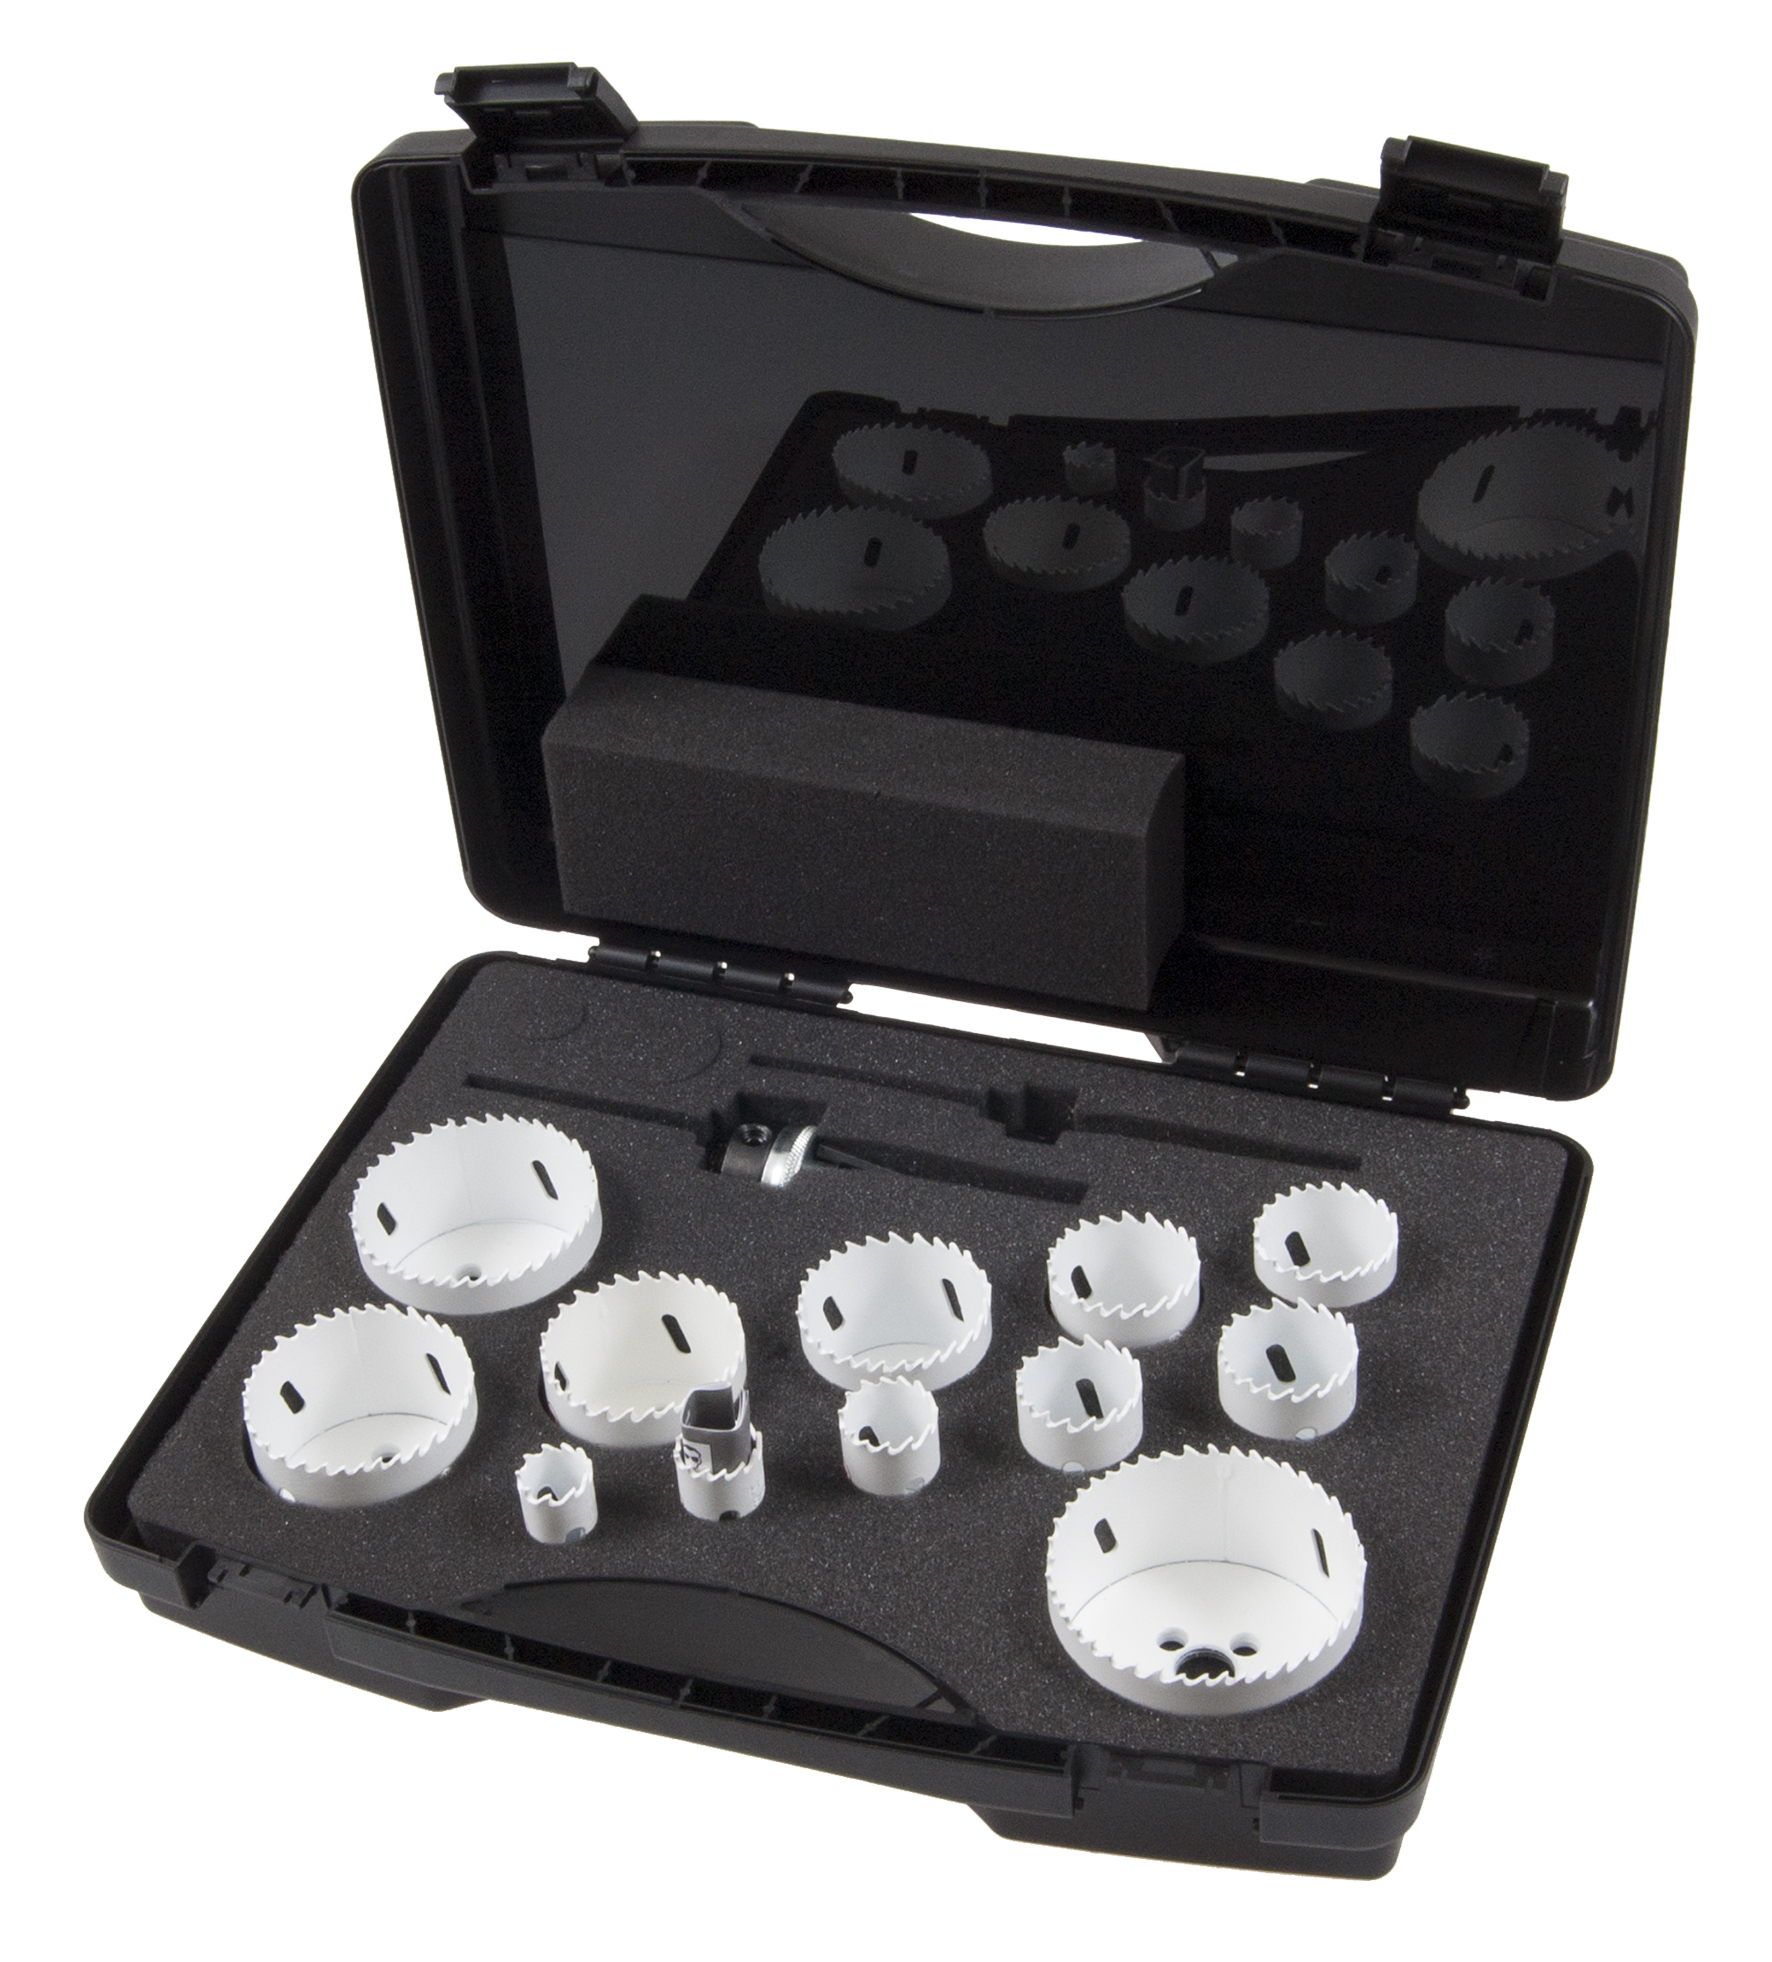 453 Coffret de 20 scies trépans Bi-Métal HSS-Co 8%